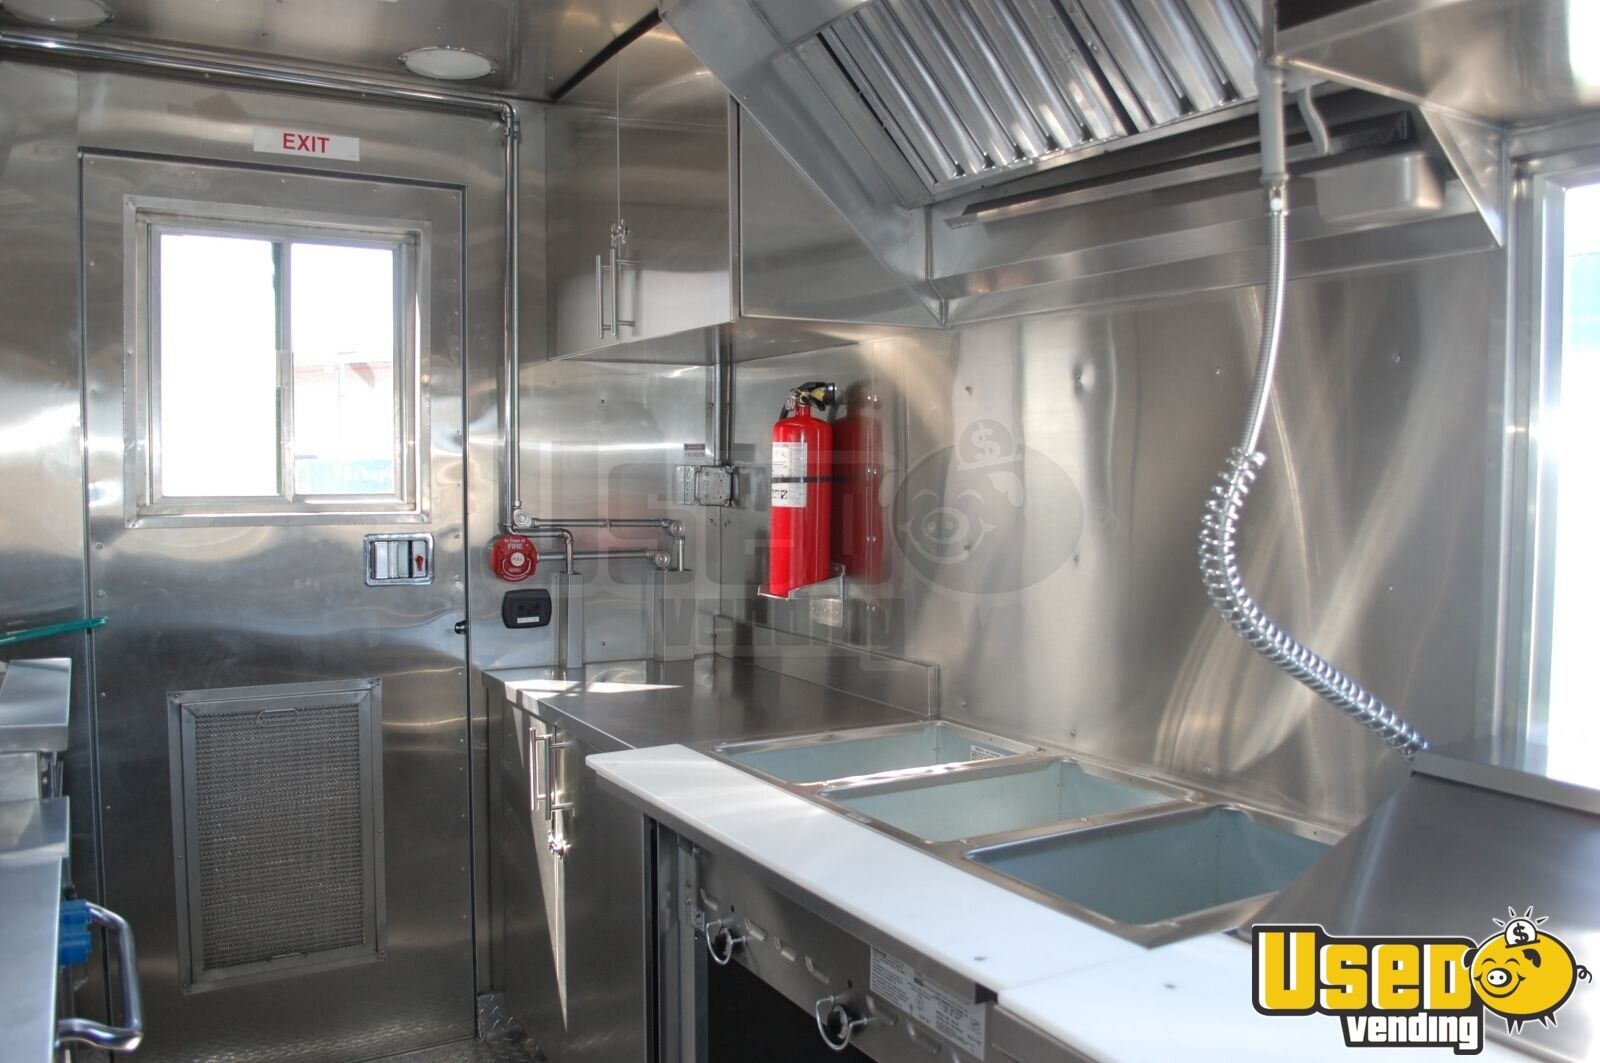 used commercial kitchen equipment buyers home depot cabinets isuzu food truck for sale indiana loaded mobile